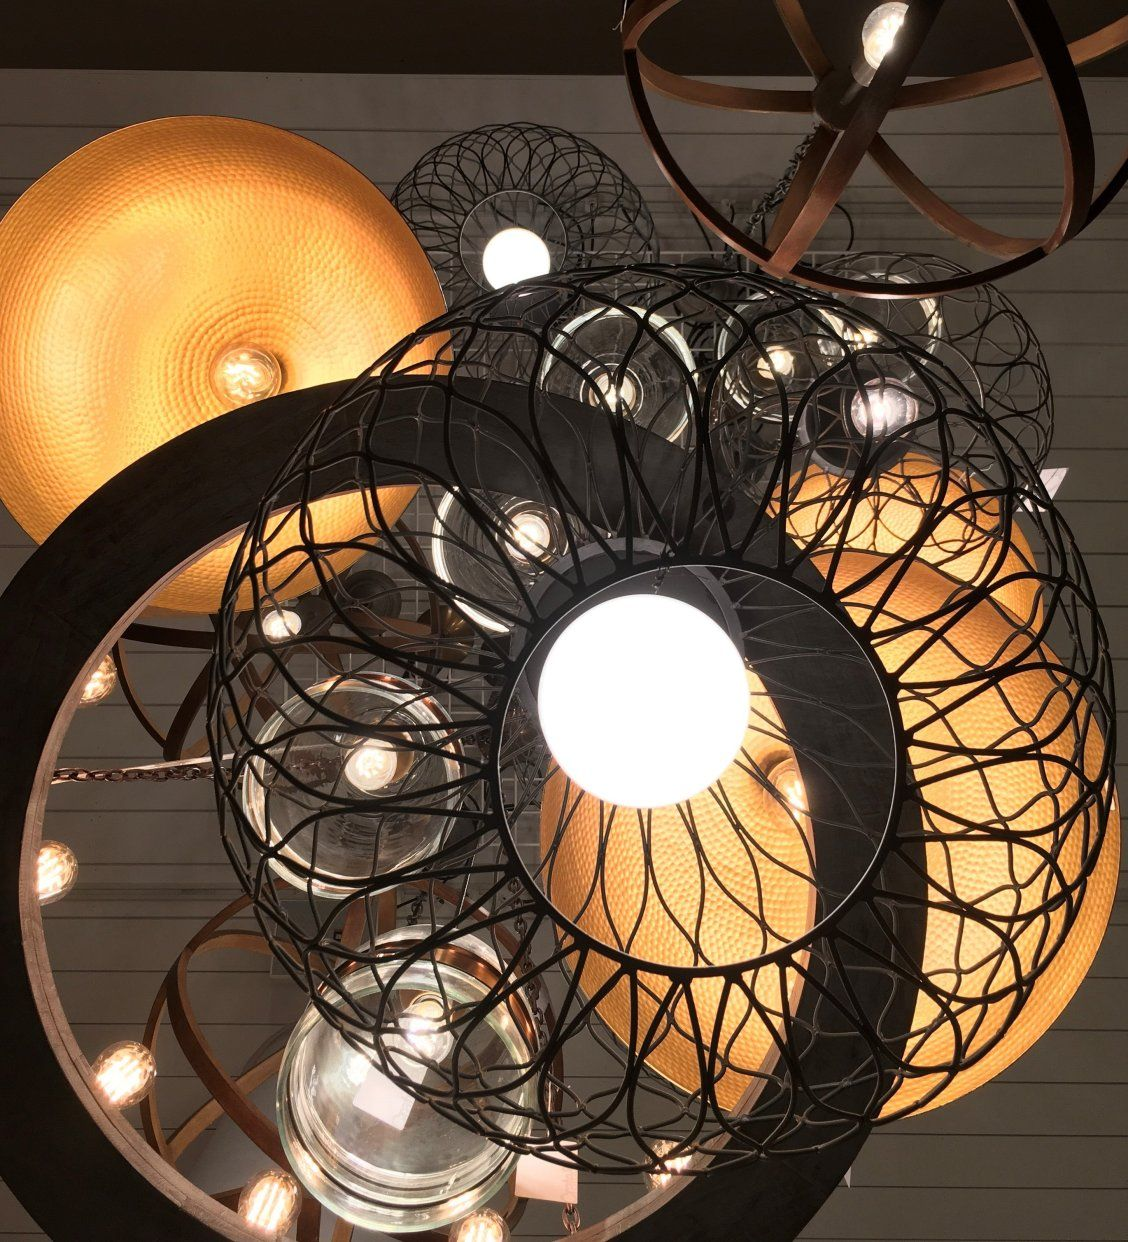 Lighting Is An Essential Component In Any Home And Adding